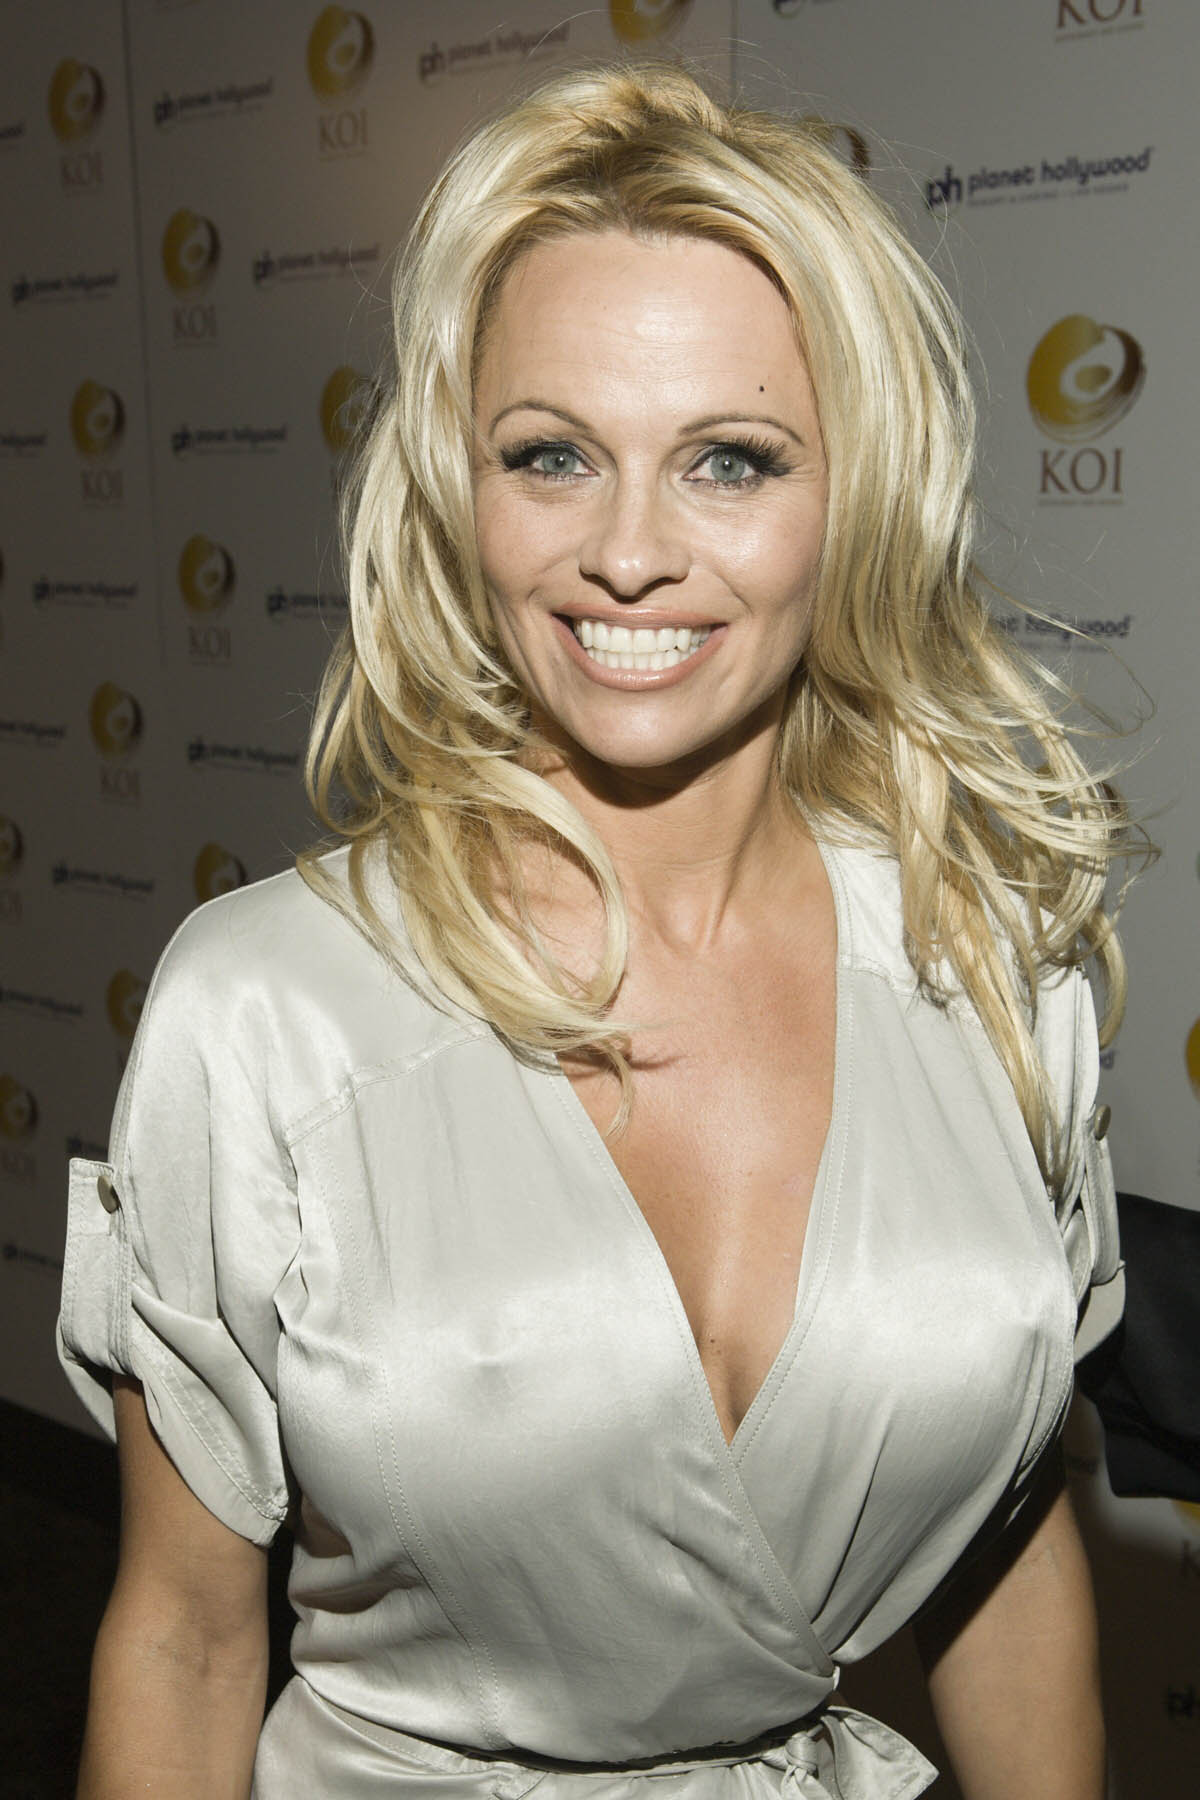 Actress Pam Anderson - age: 50